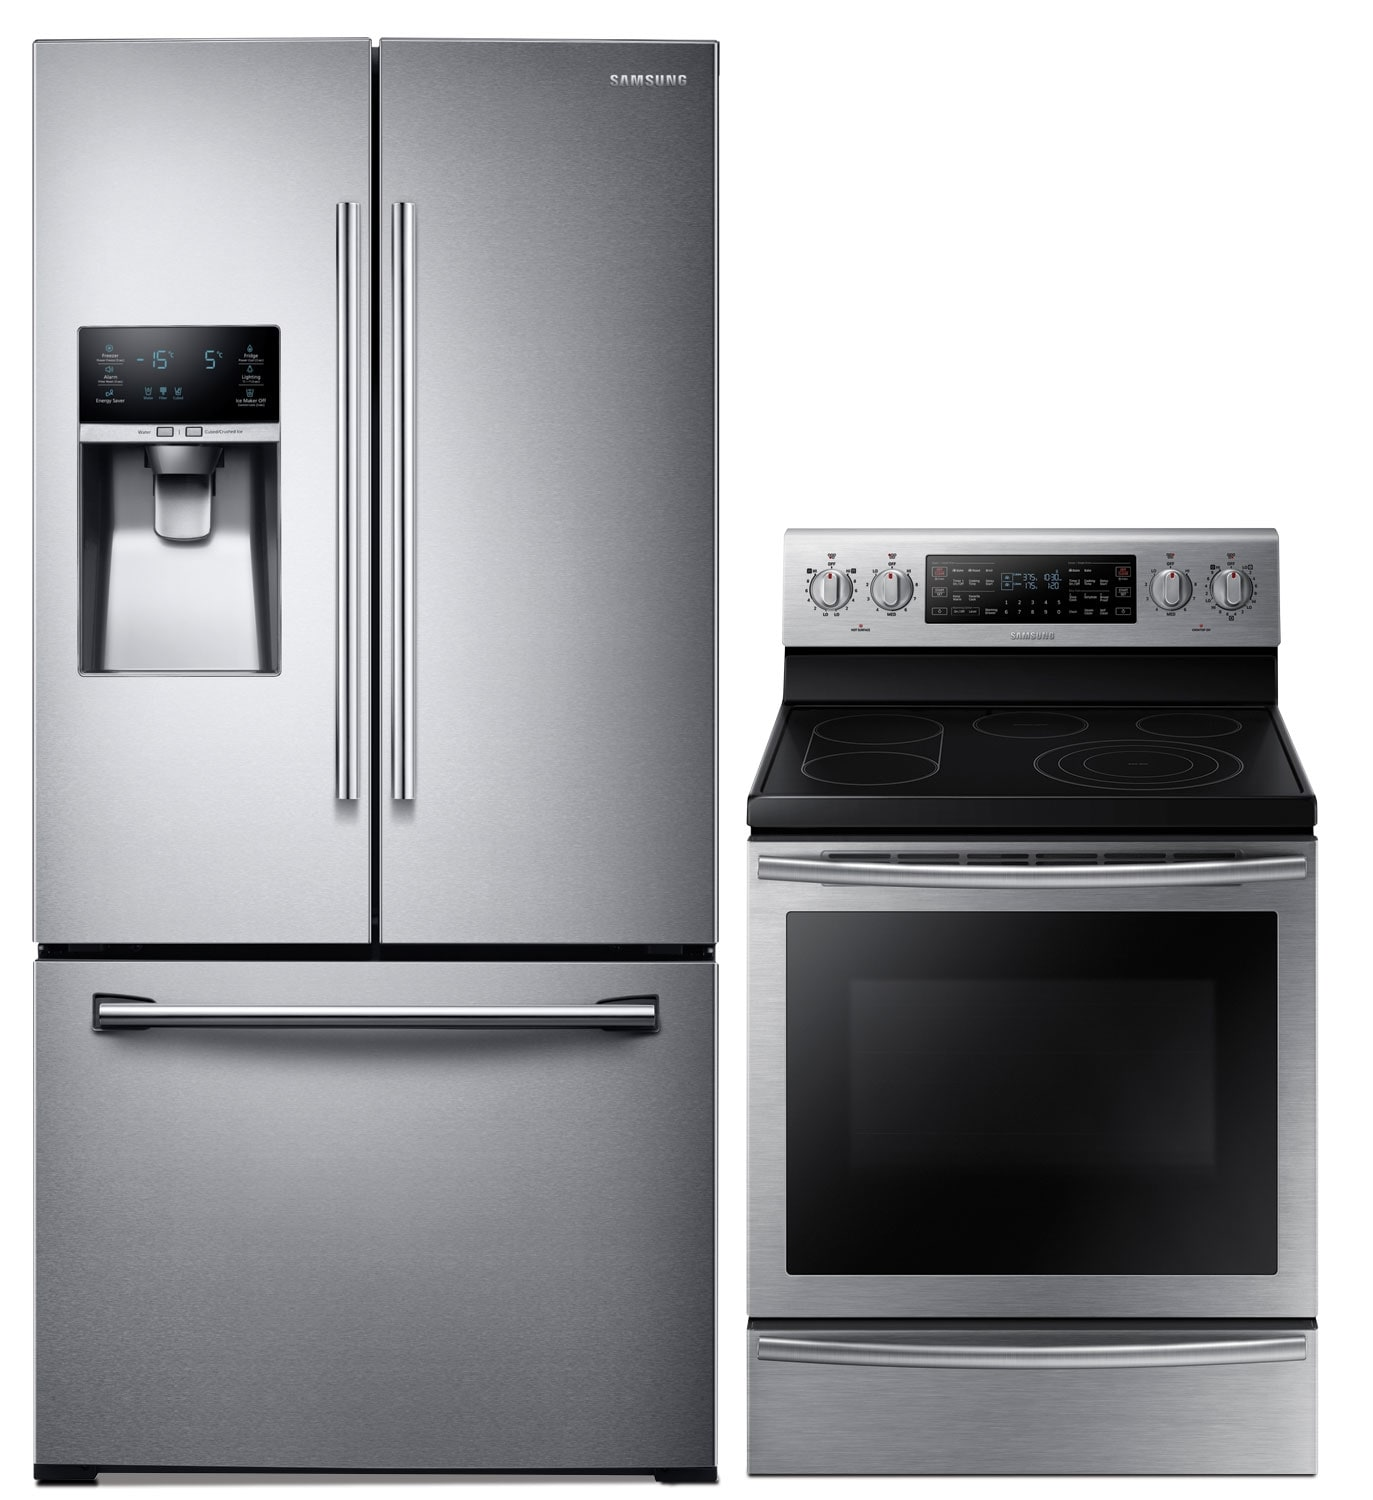 Cooking Products - Samsung 25.5 Cu. Ft. Refrigerator and 5.9 Cu. Ft. Electric Range